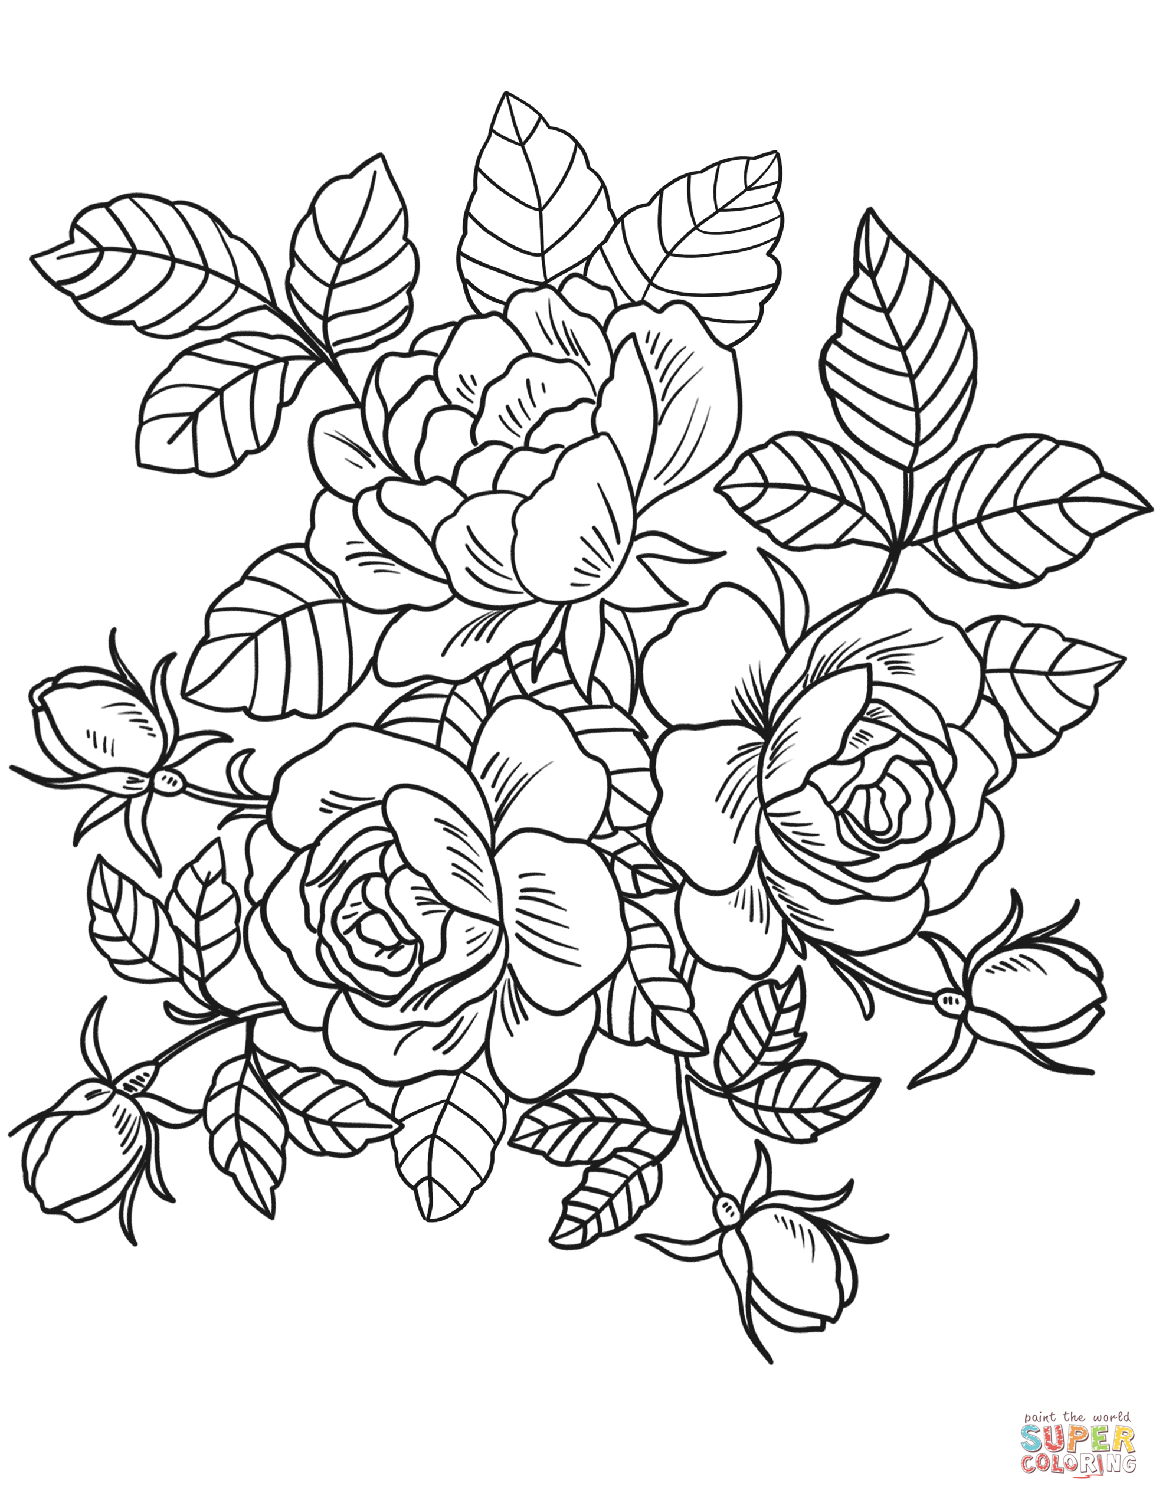 Colouring page of flowers